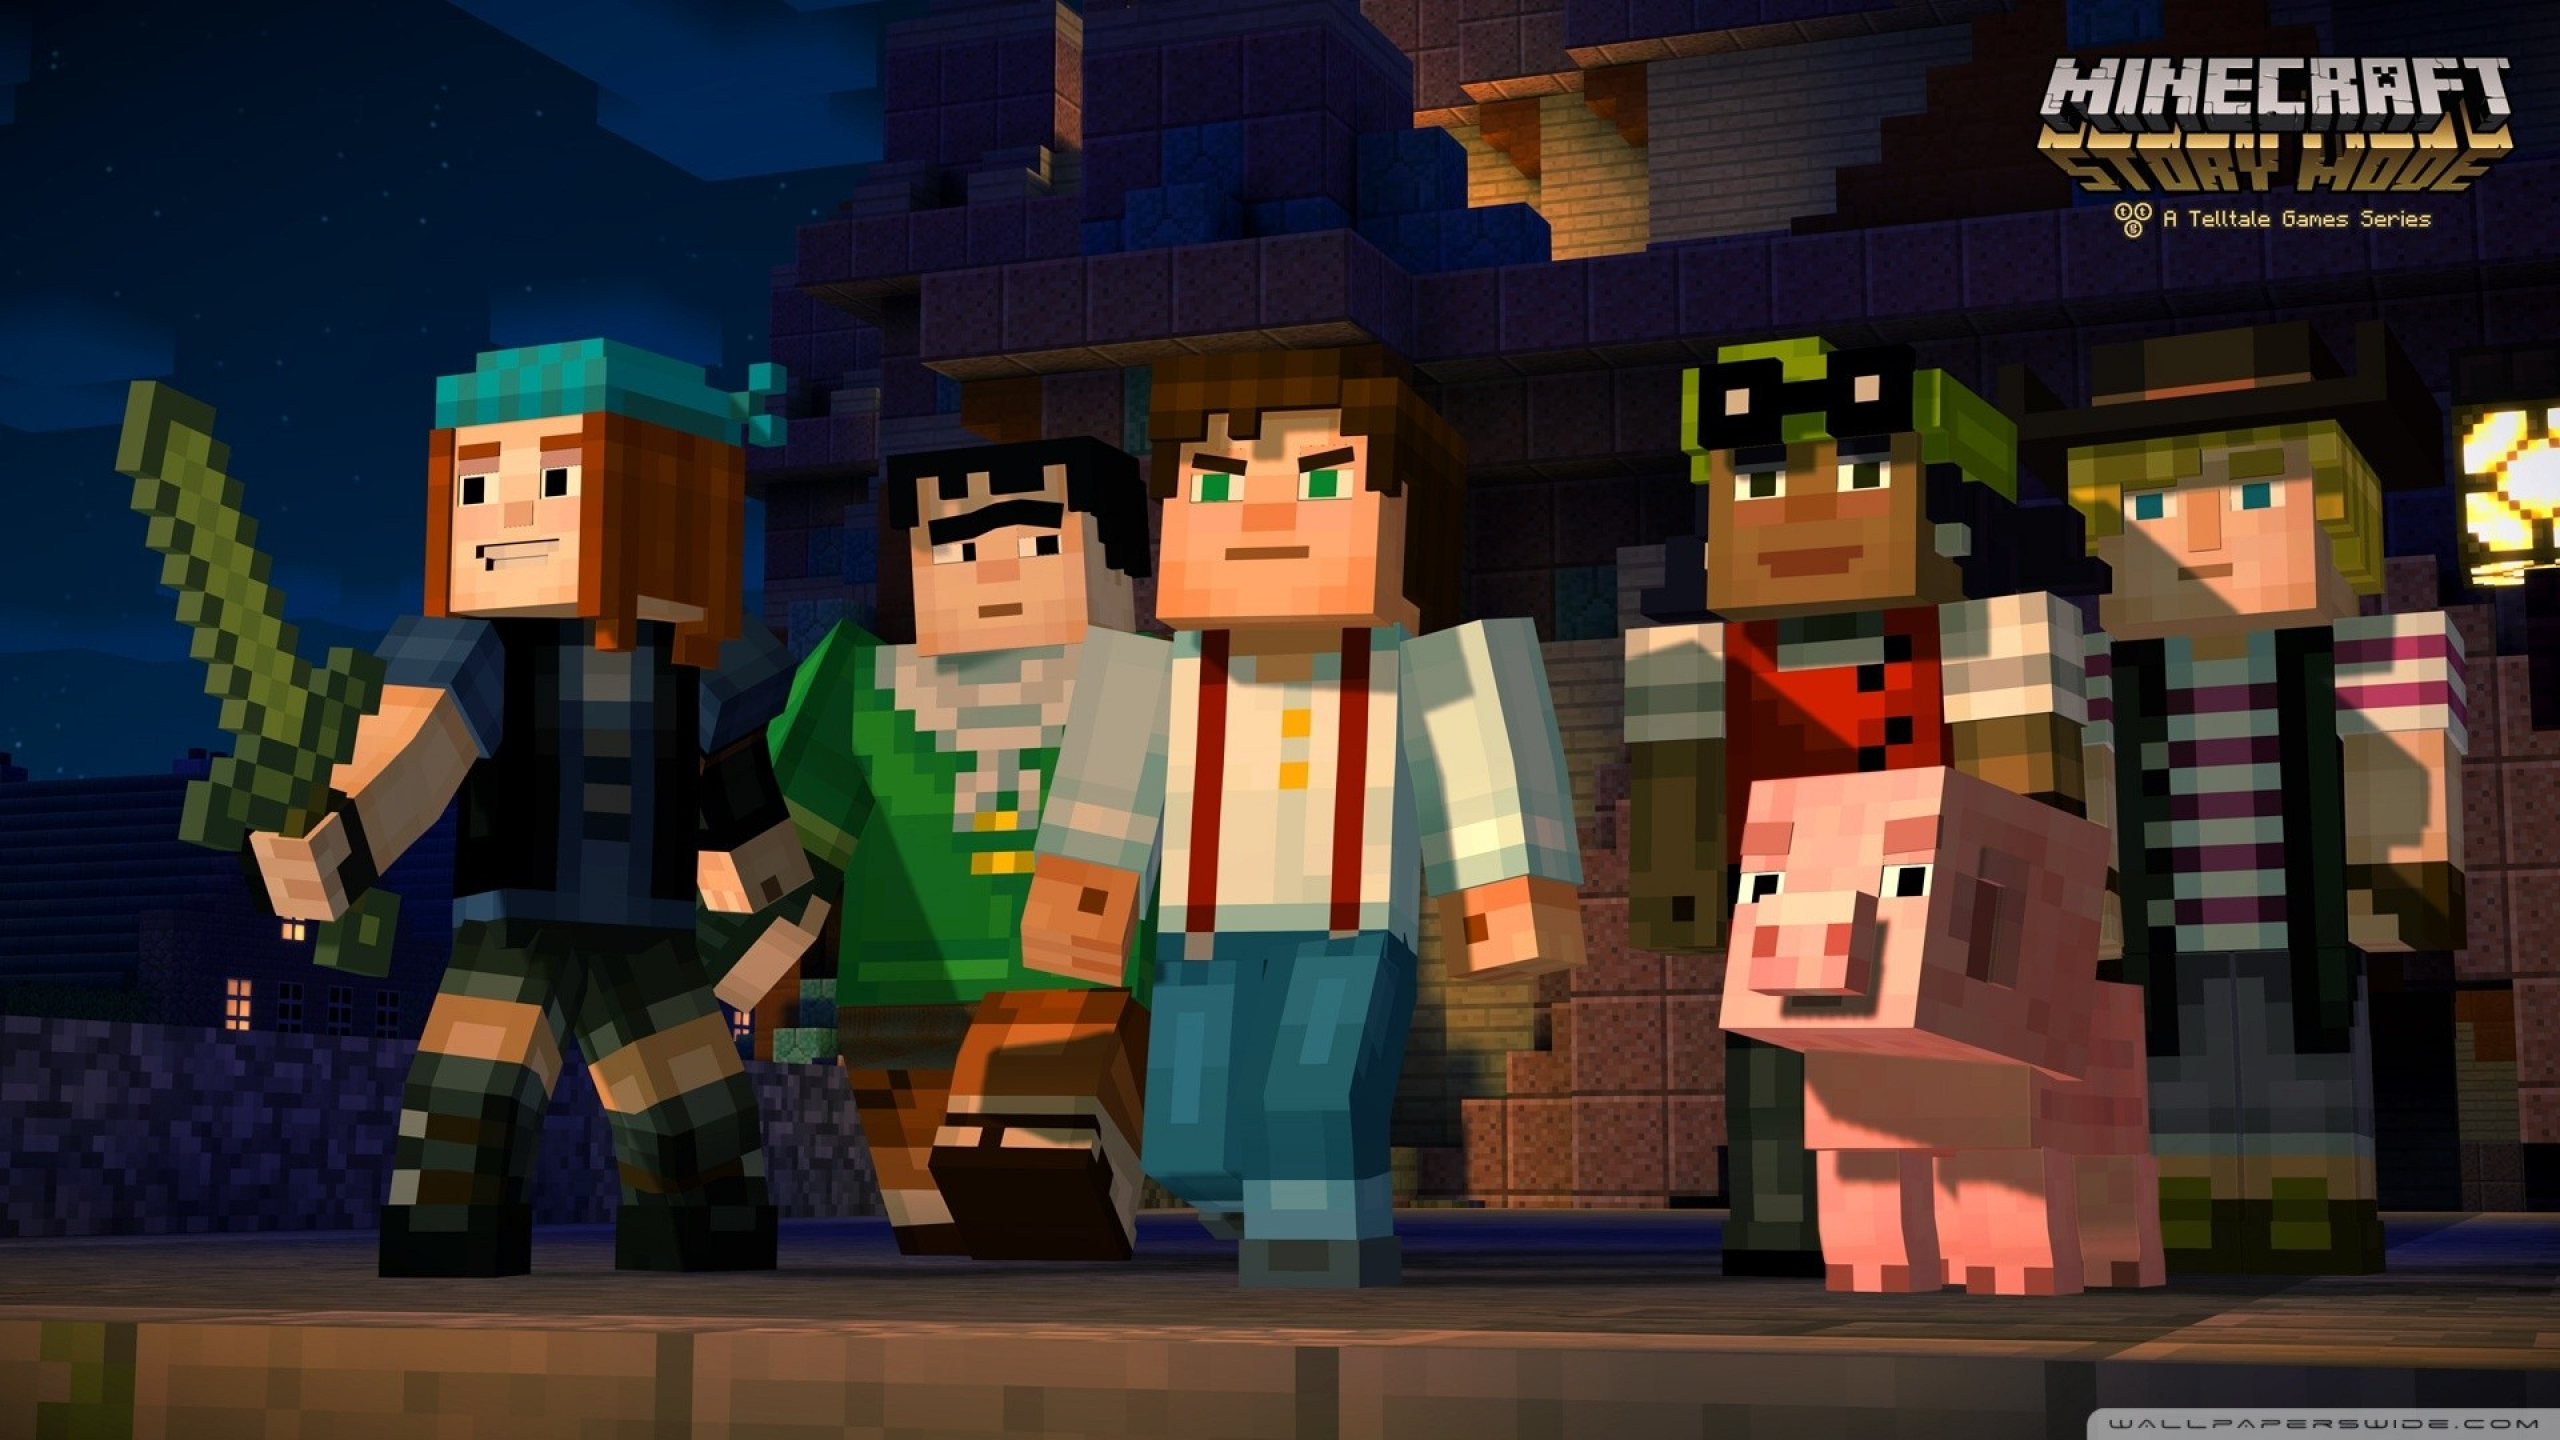 Download 2560x1440 Minecraft Story Mode Minecraft Video